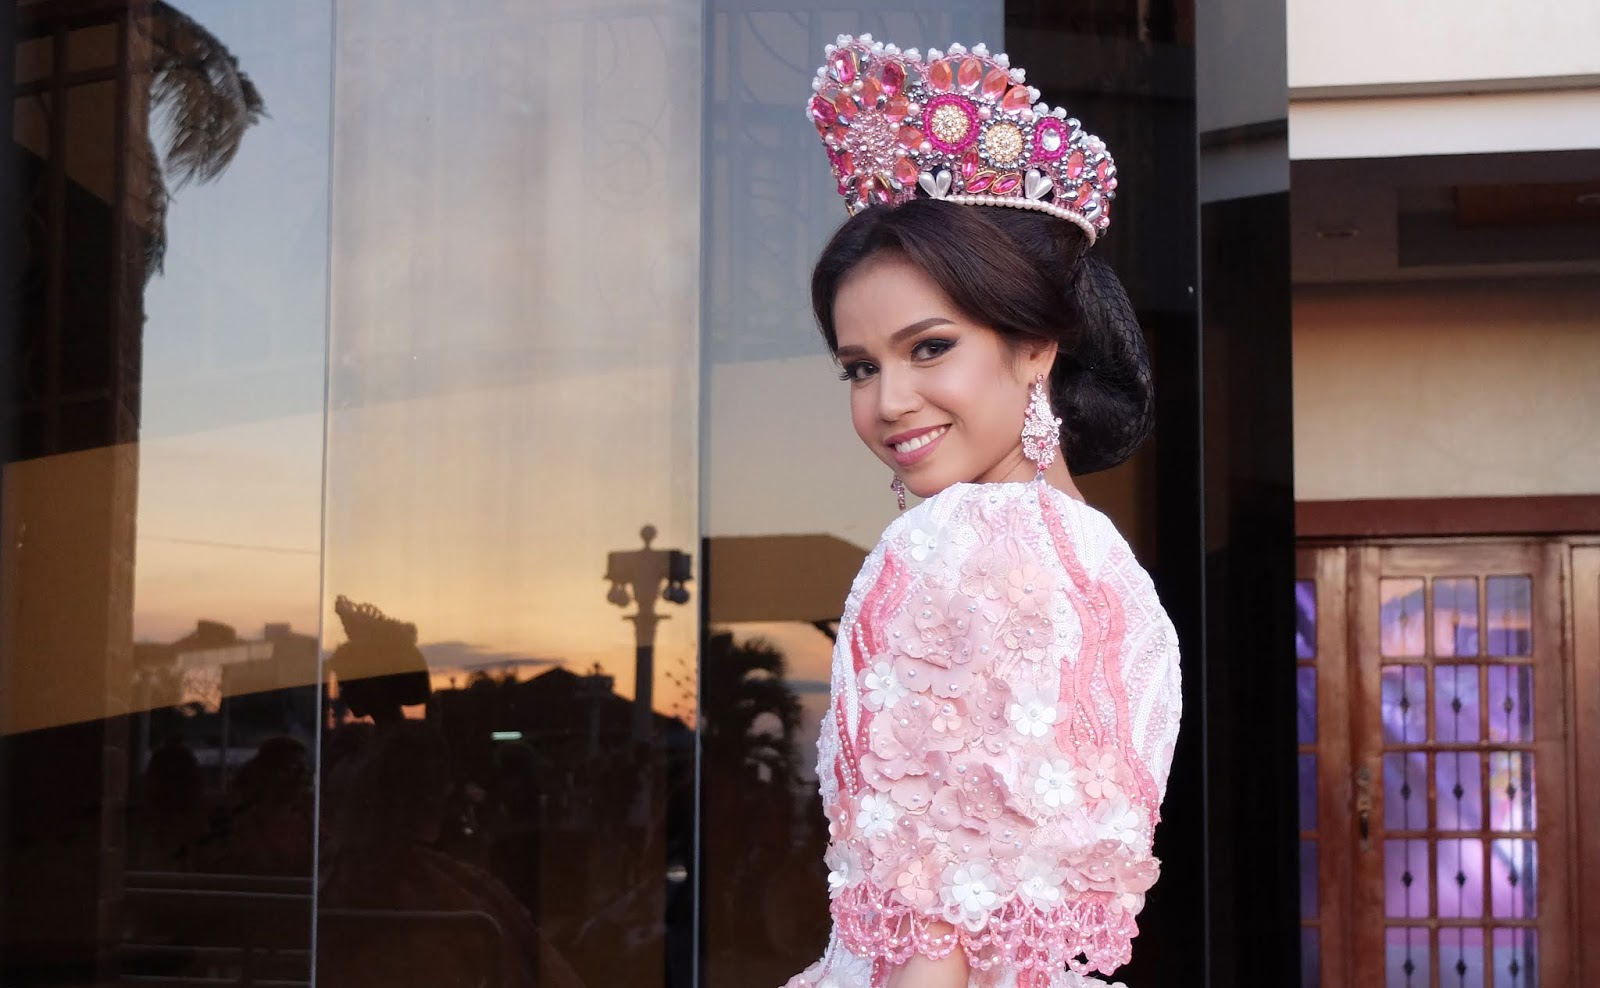 Camille Quijano in a Pinky Josh gown inspired by Pamulinawen Festival of Laoag City Ilocos Norte Festival de las Bellas y Flores Gown Competition National Costume